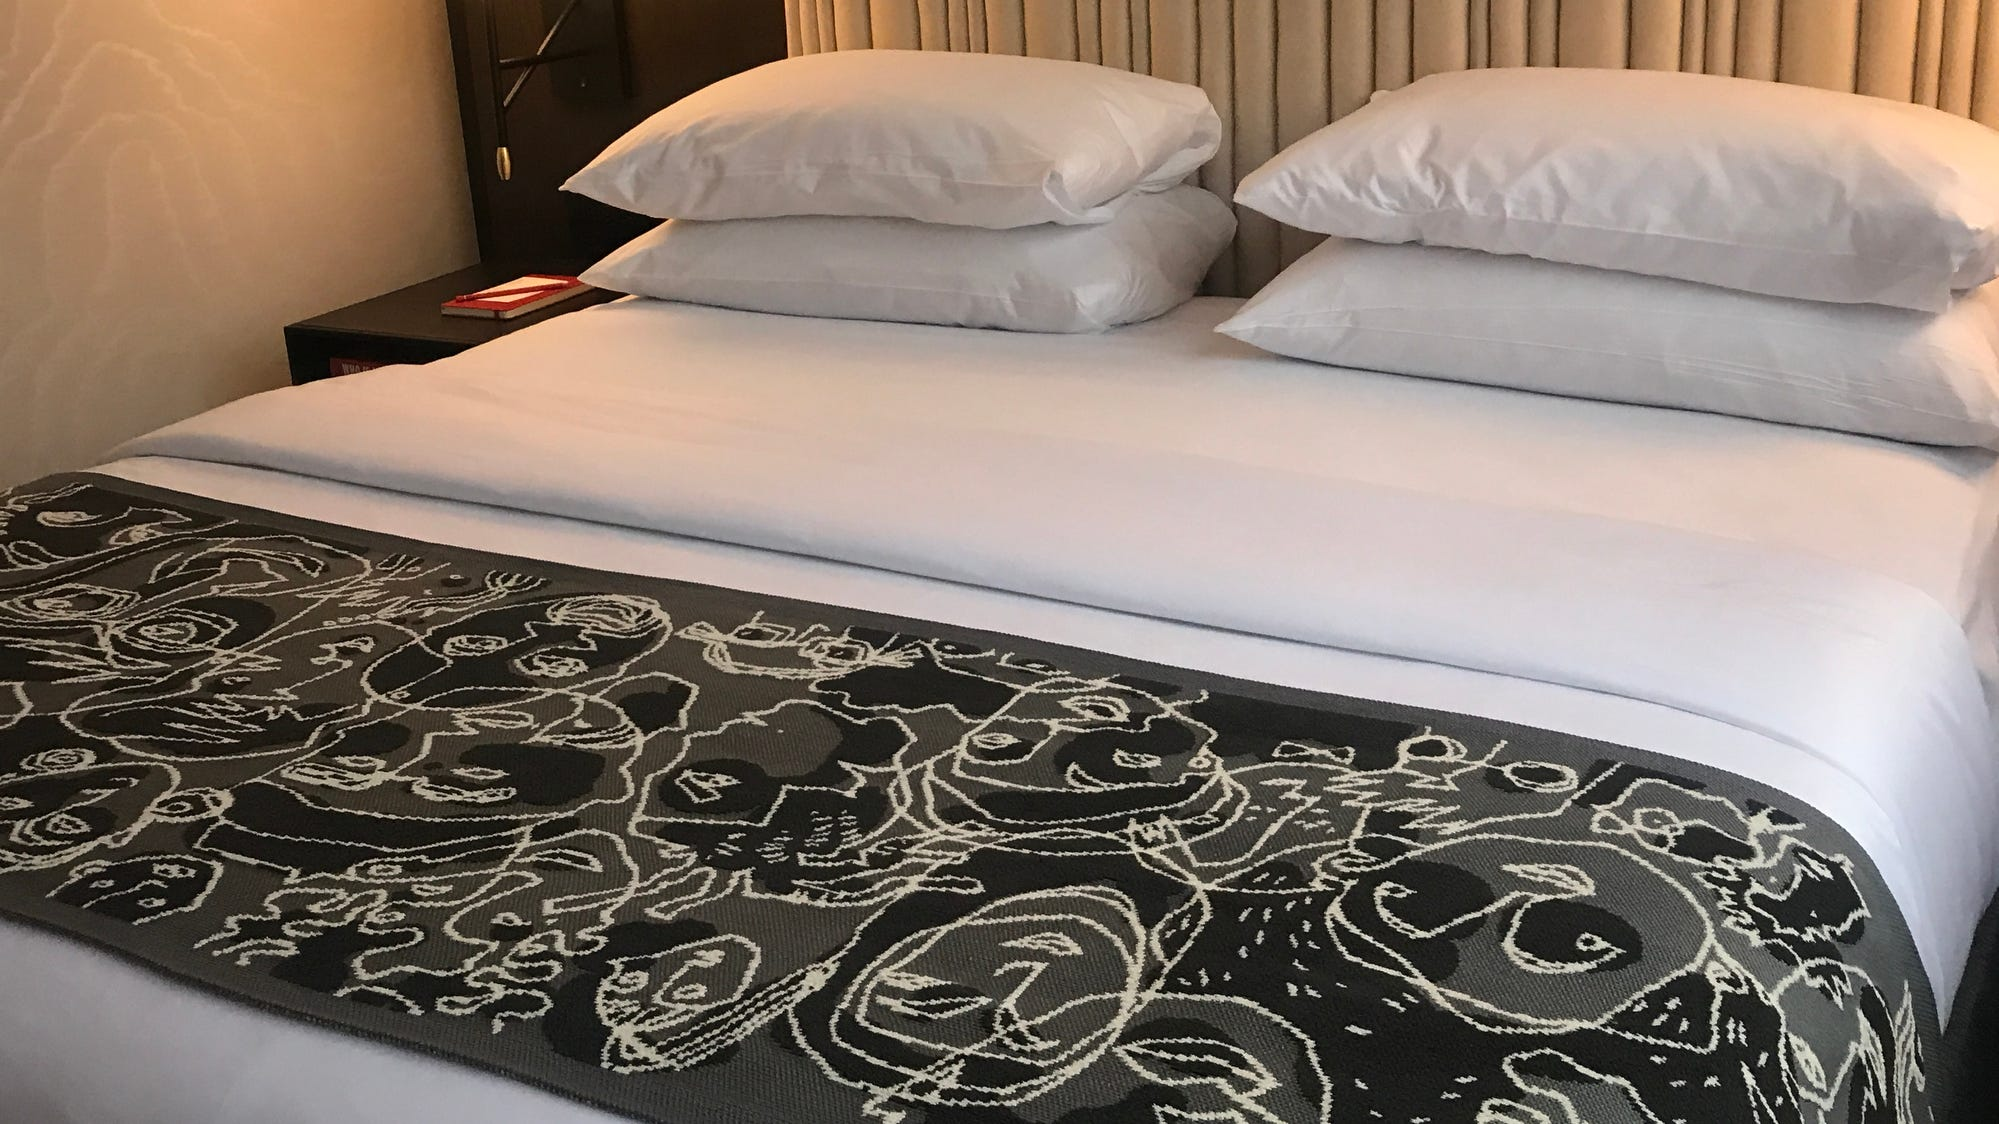 At the foot of every bed at the Saint Kate hotel...